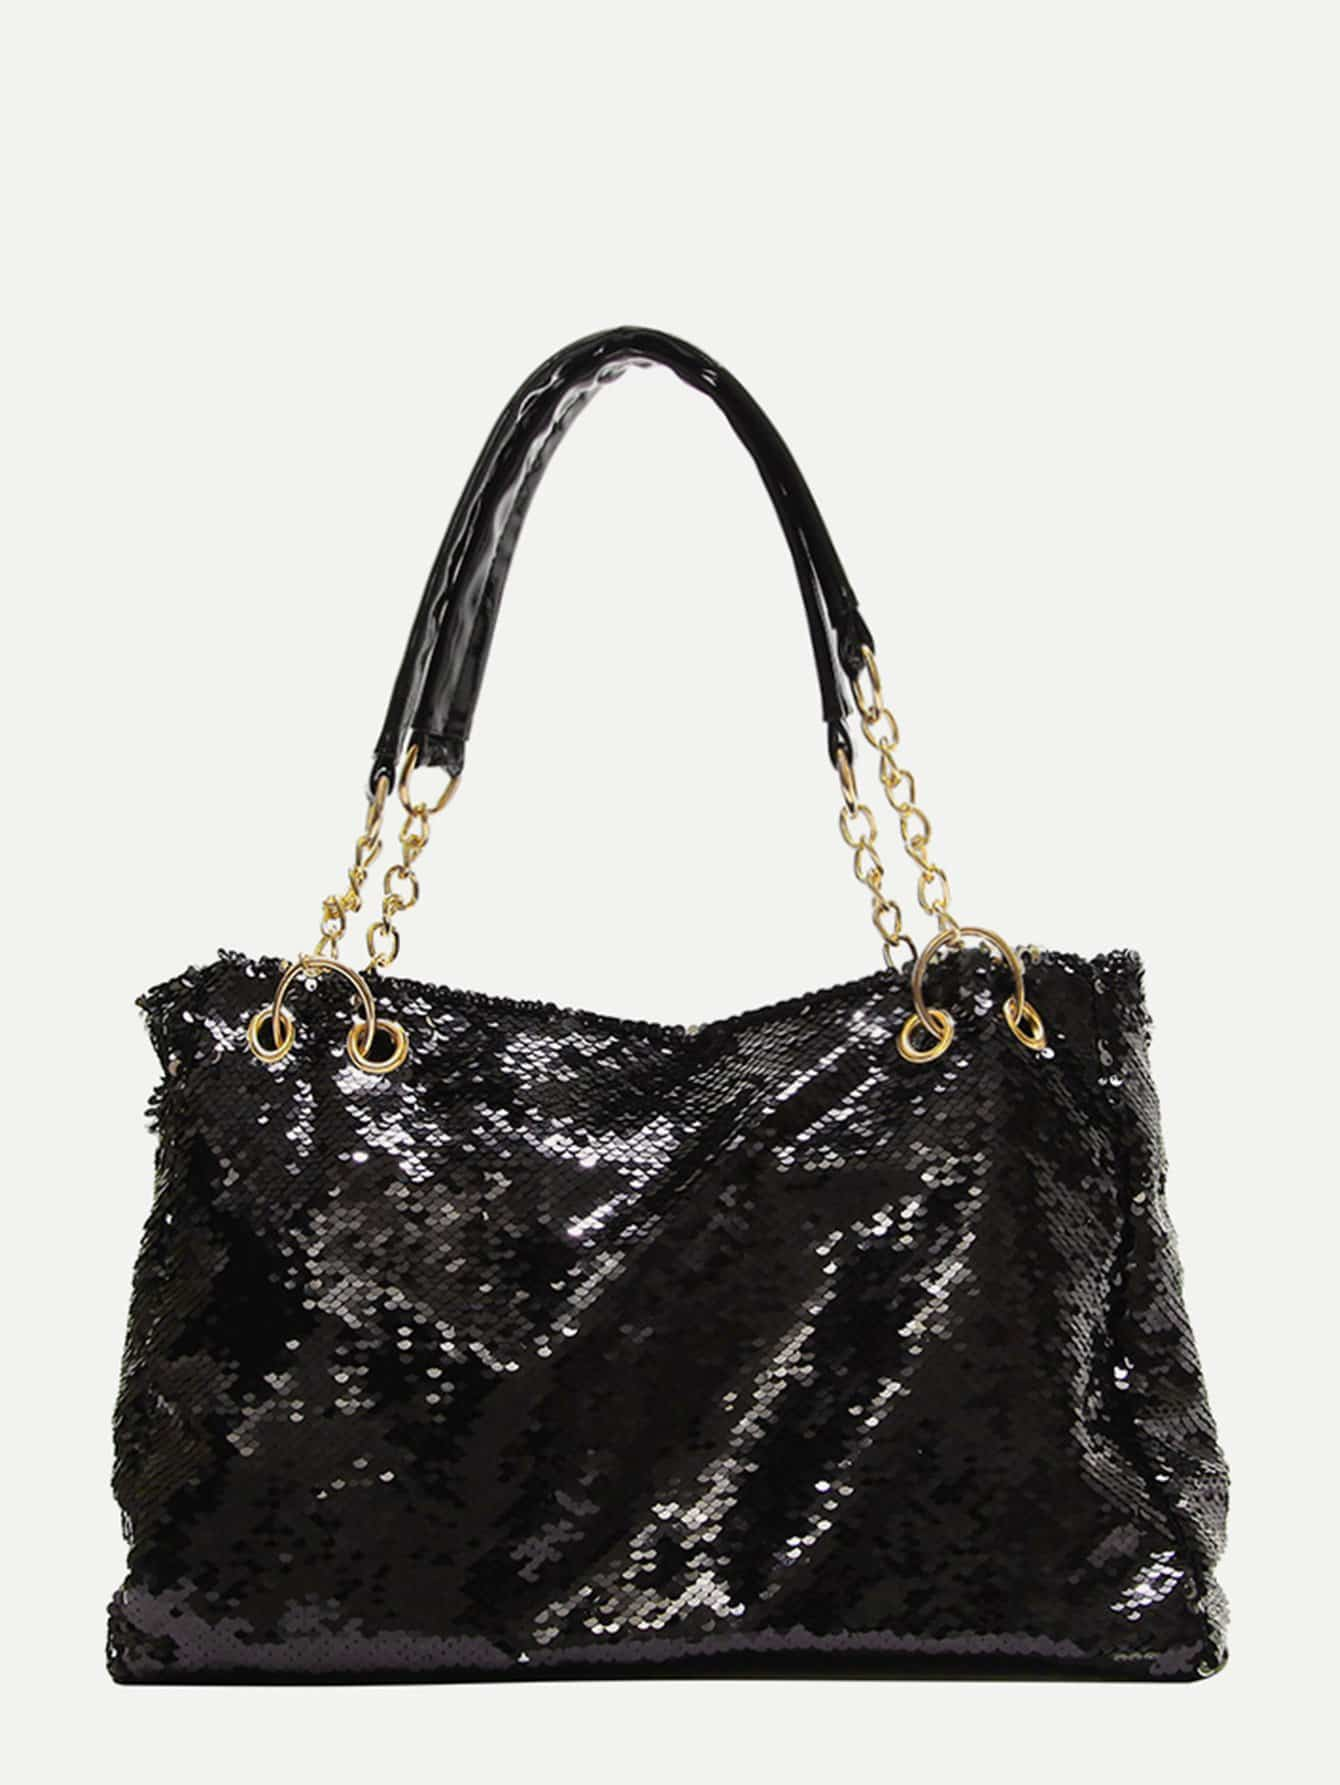 Sequin Tote Bag With Double Handle clear wood handle bag with sequin pouch